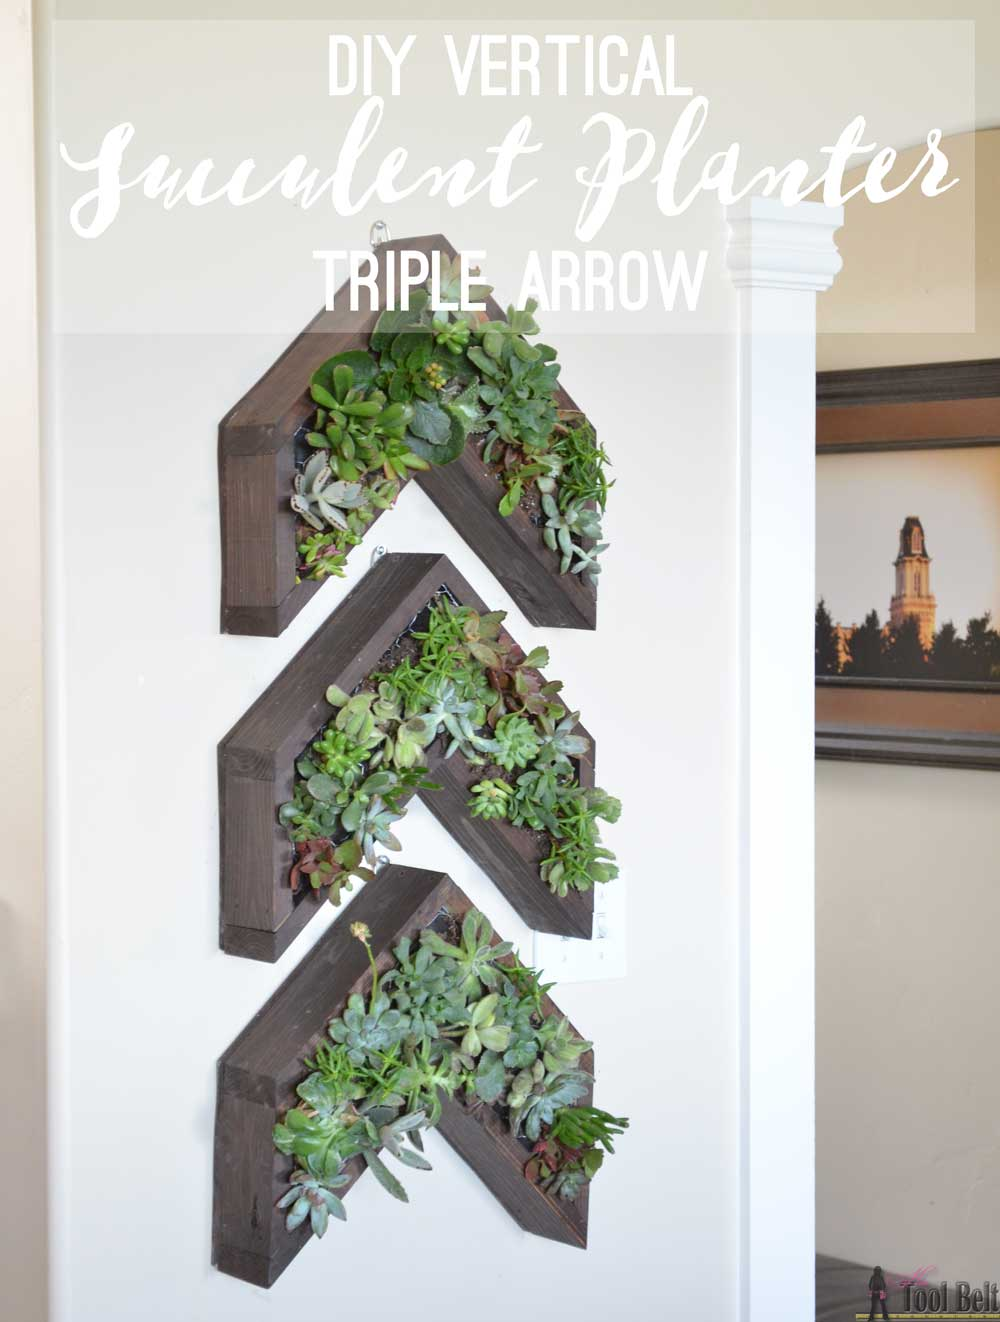 Arrow Vertical Succulent Planter Her Tool Belt